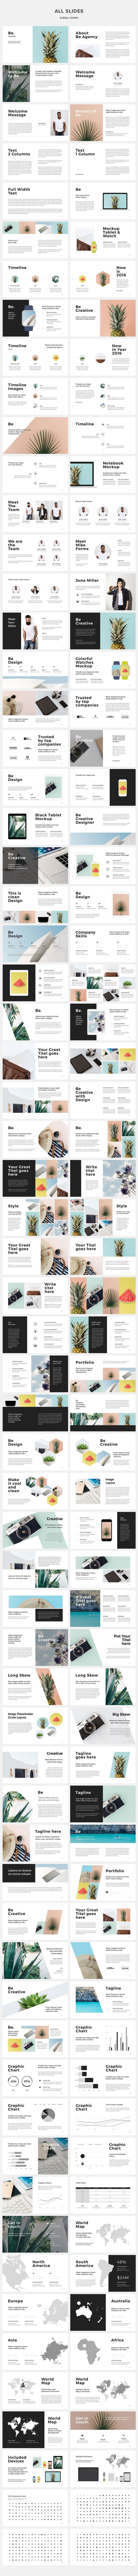 A modern and minimalistic powerpoint slide presentation template. Would also work well as a look book, ebook, or other digital pamphlet.